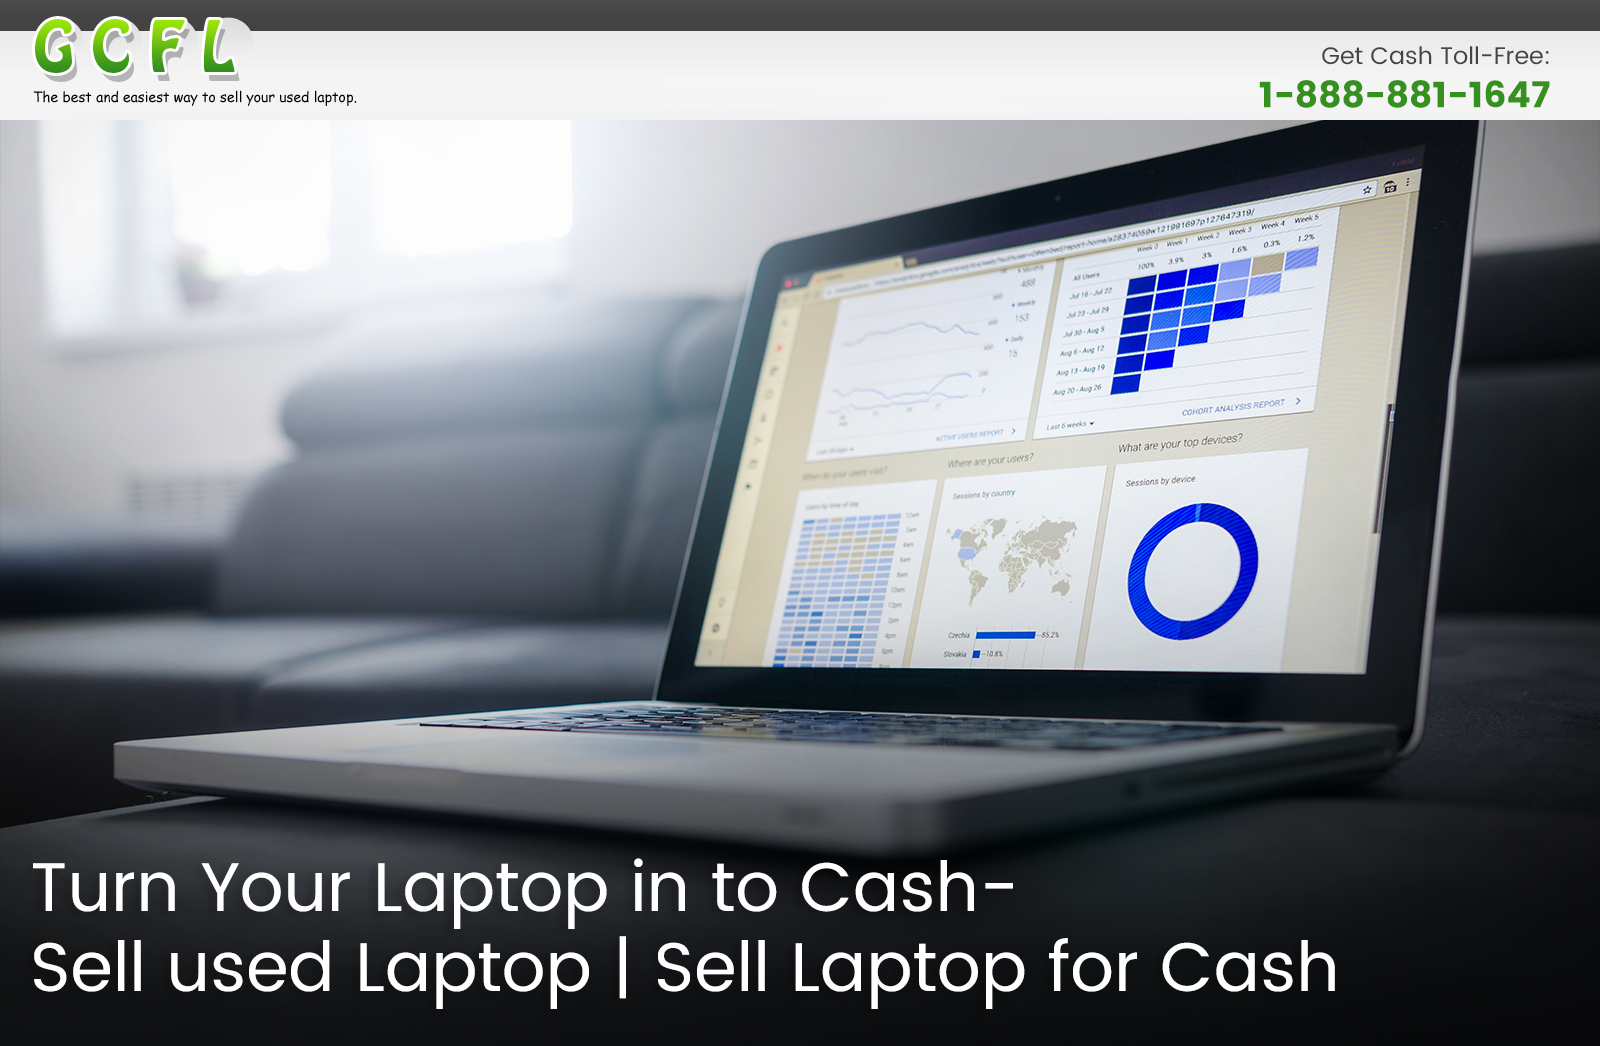 Turn Your Laptop in to Cash – Sell used Laptop | Sell Laptop for Cash